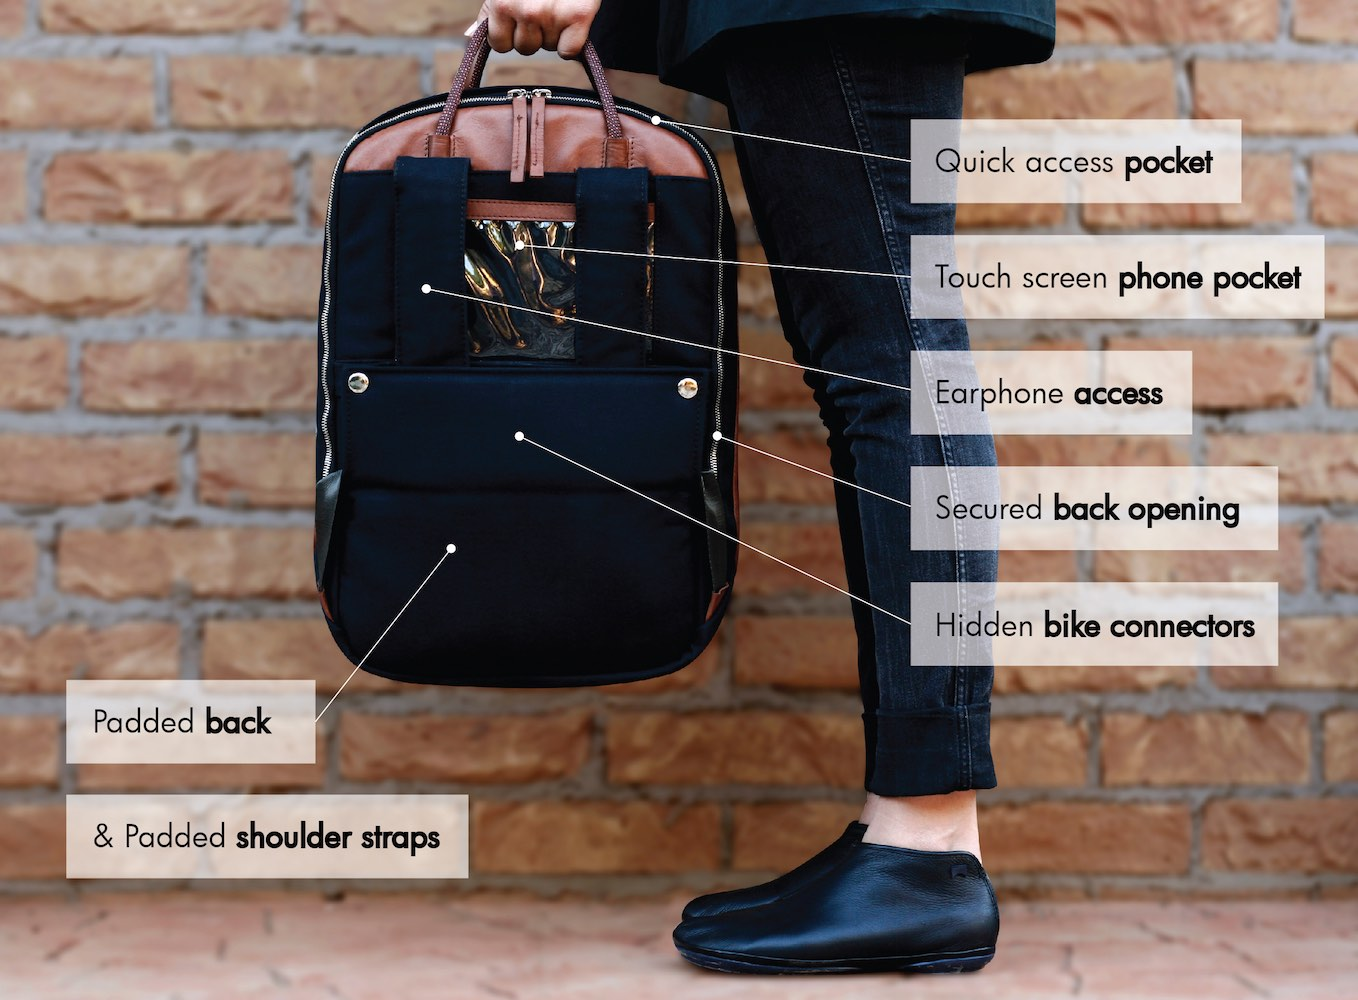 The Elegant Urban Cycling Commuter Backpack